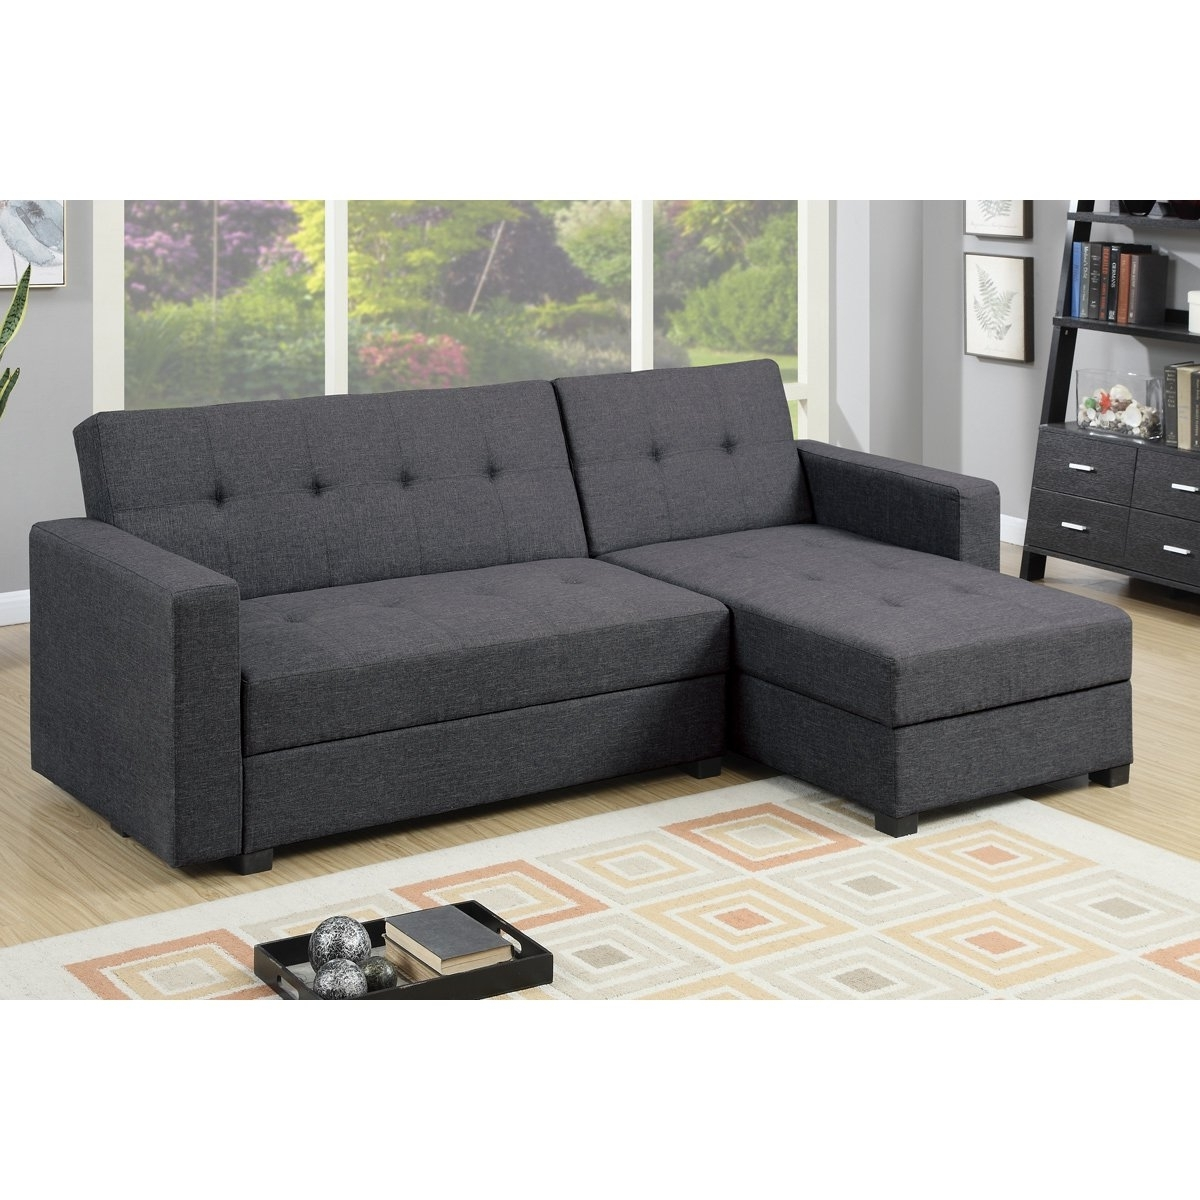 Furniture: Reversible Chaise Sectional For Comfortable Living Room Throughout Famous Sofas With Reversible Chaise Lounge (View 5 of 15)